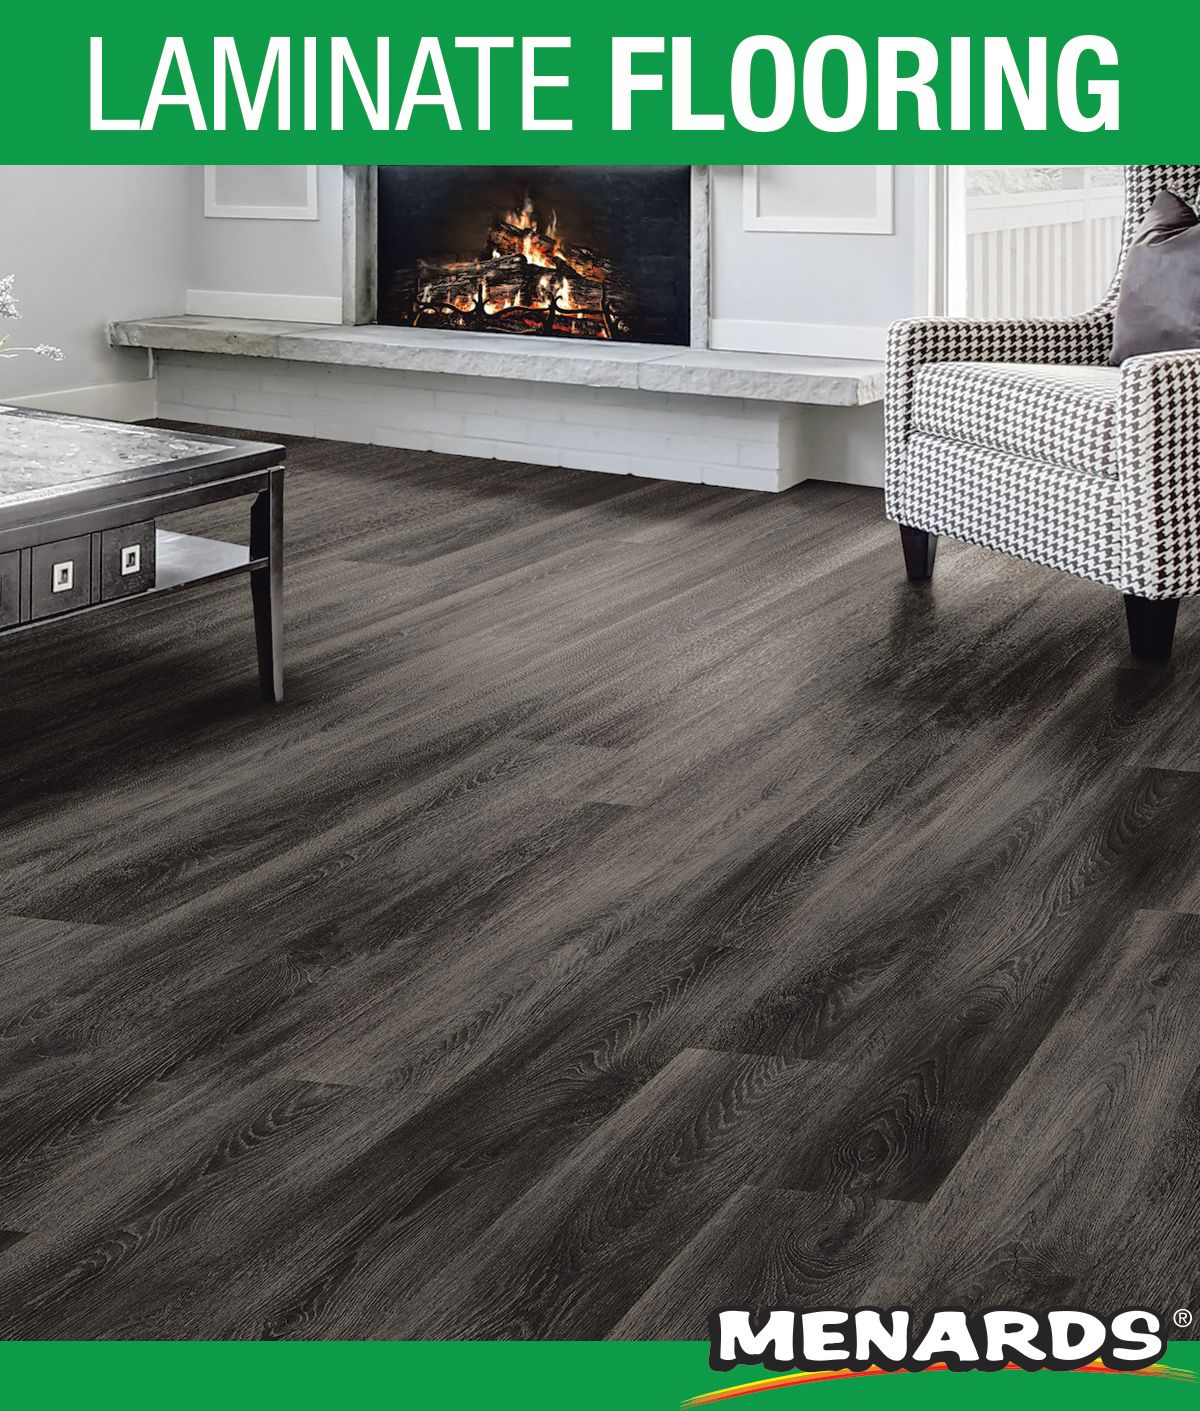 Tarkett Grovewood Empire Oak Shadow 8 1 32 X 47 5 8 Attached Pad Laminate Flooring In 2020 Flooring Laminate Flooring New Homes